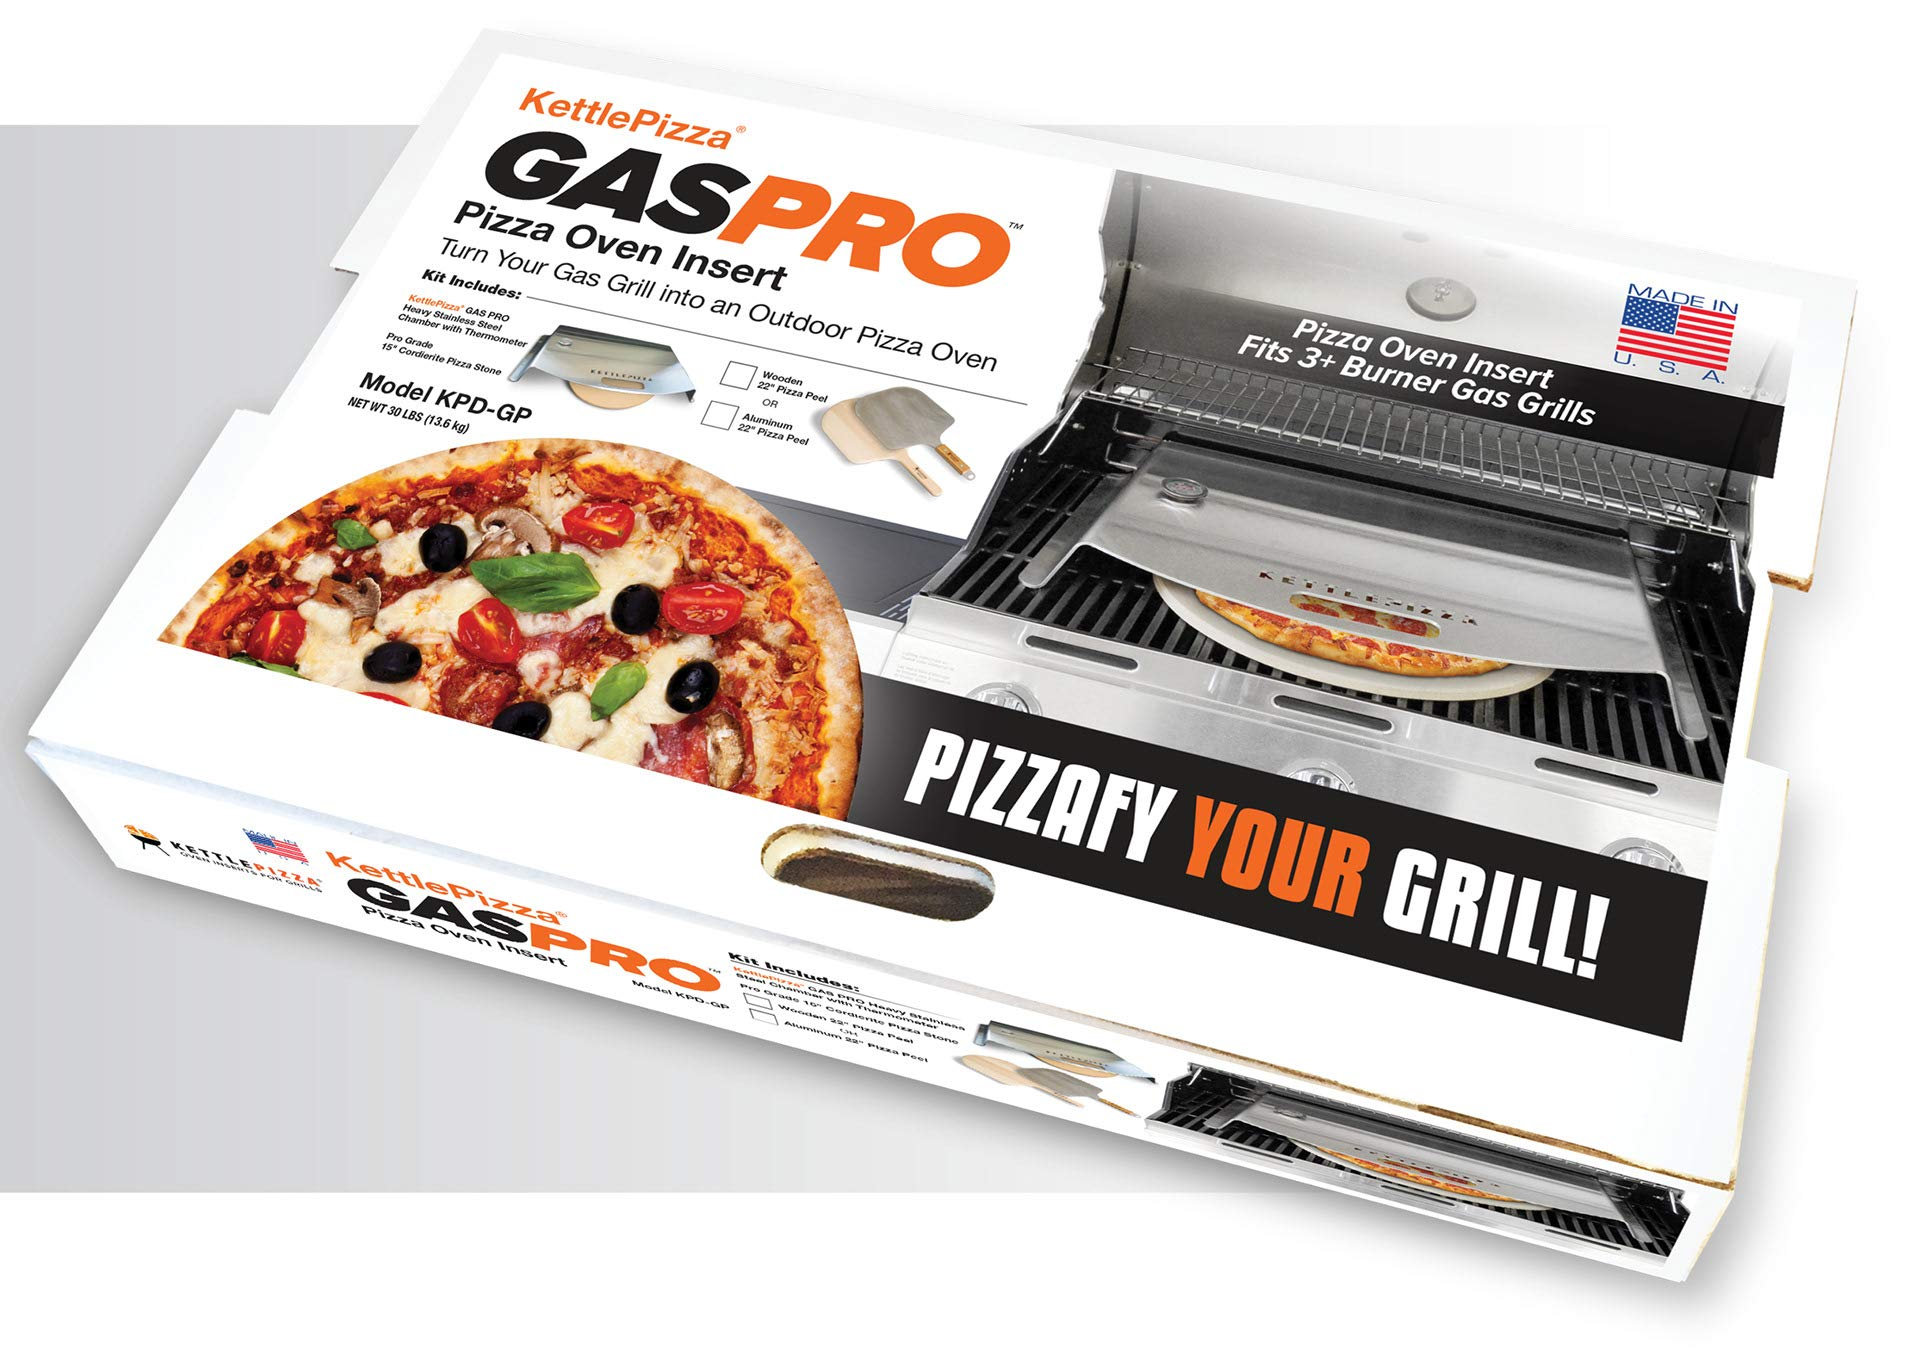 KettlePizza Gas Pro Basic Pizza Oven Kit - KPB-GP by Kettle Pizza